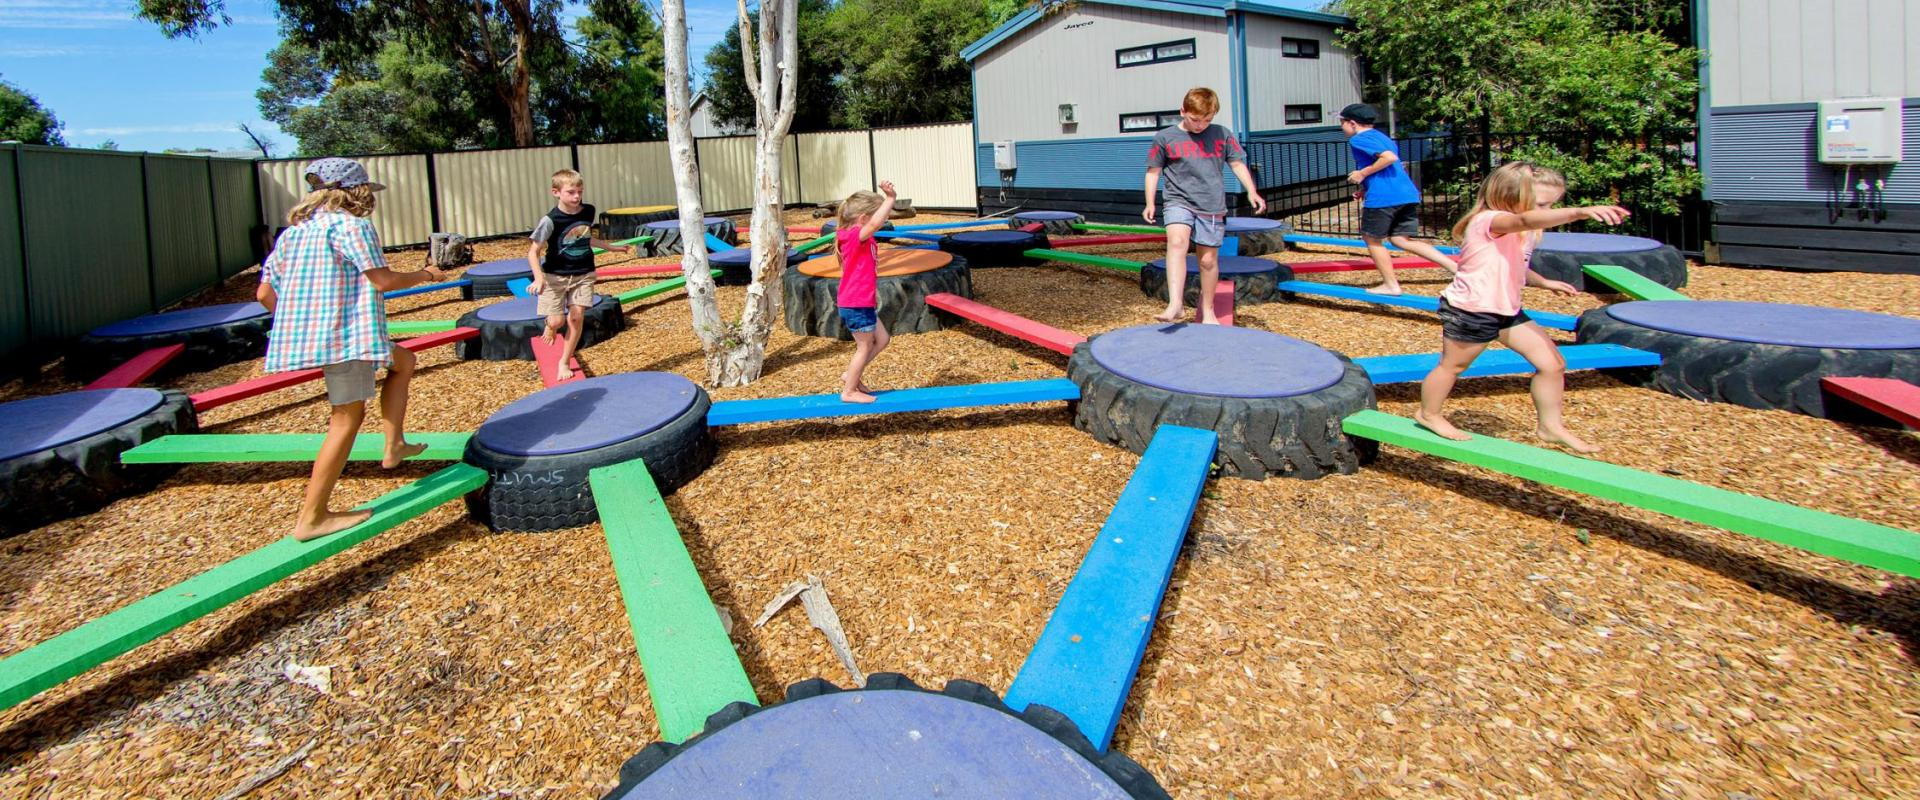 BIG4 Shepparton Park Lane Holiday Park - Kids playing on tyre maze